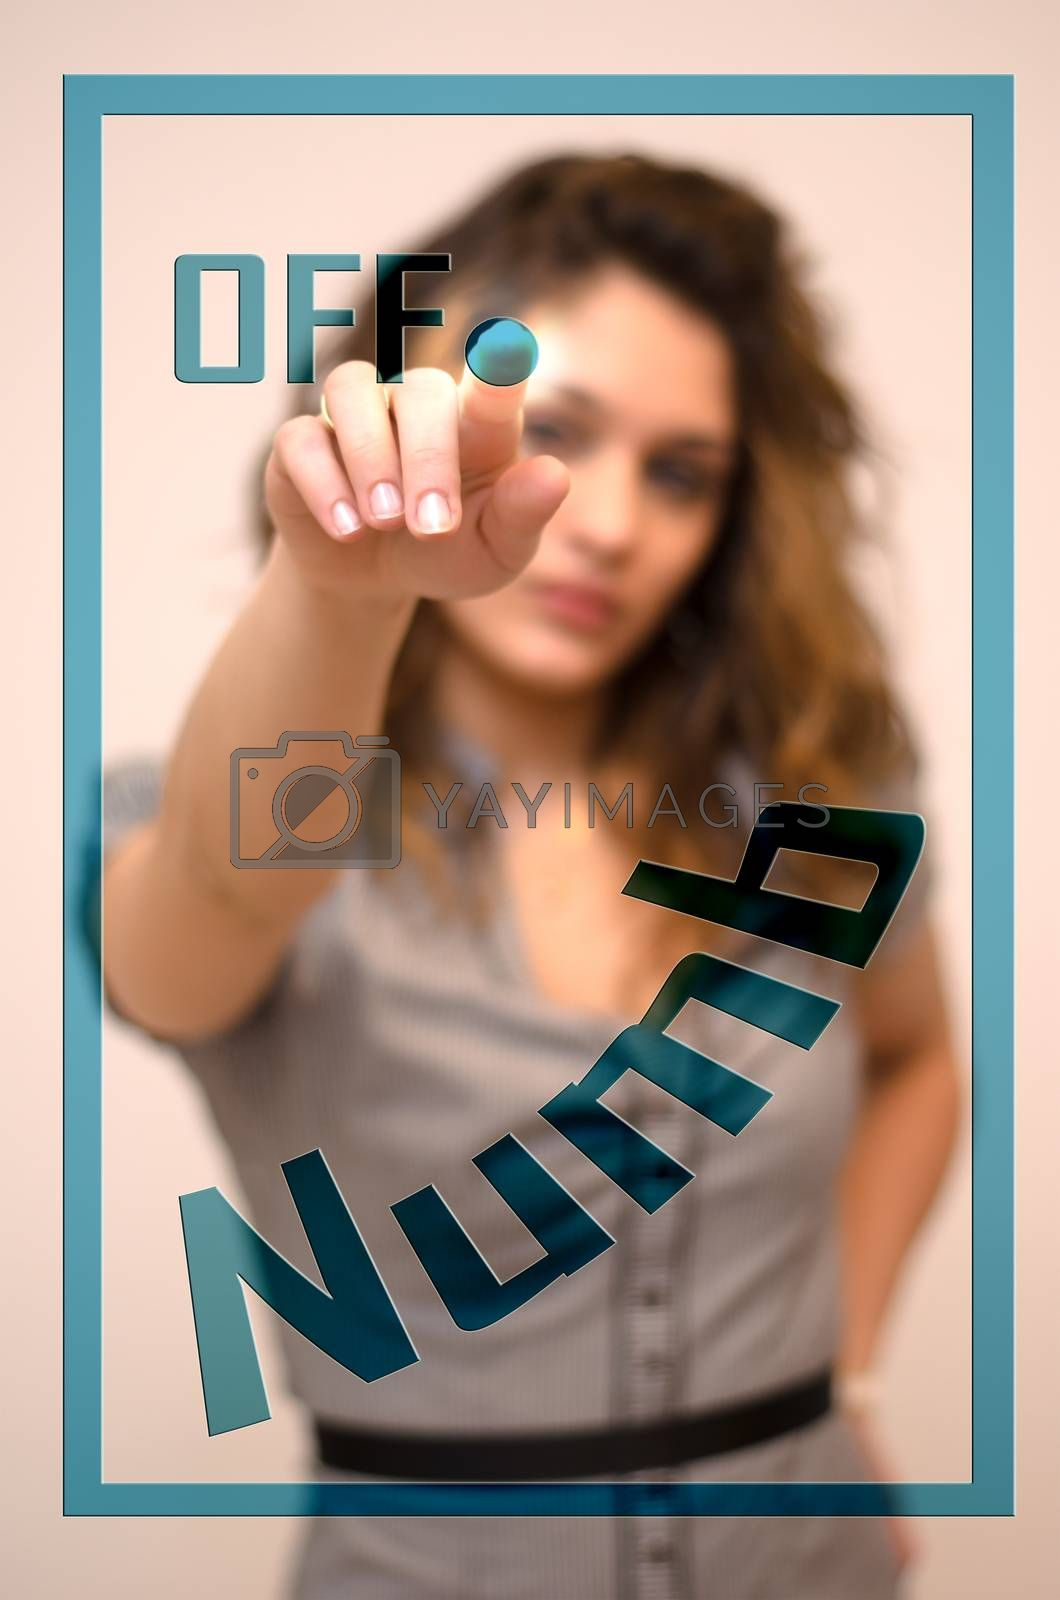 Royalty free image of woman turning off Numb on panel by vepar5